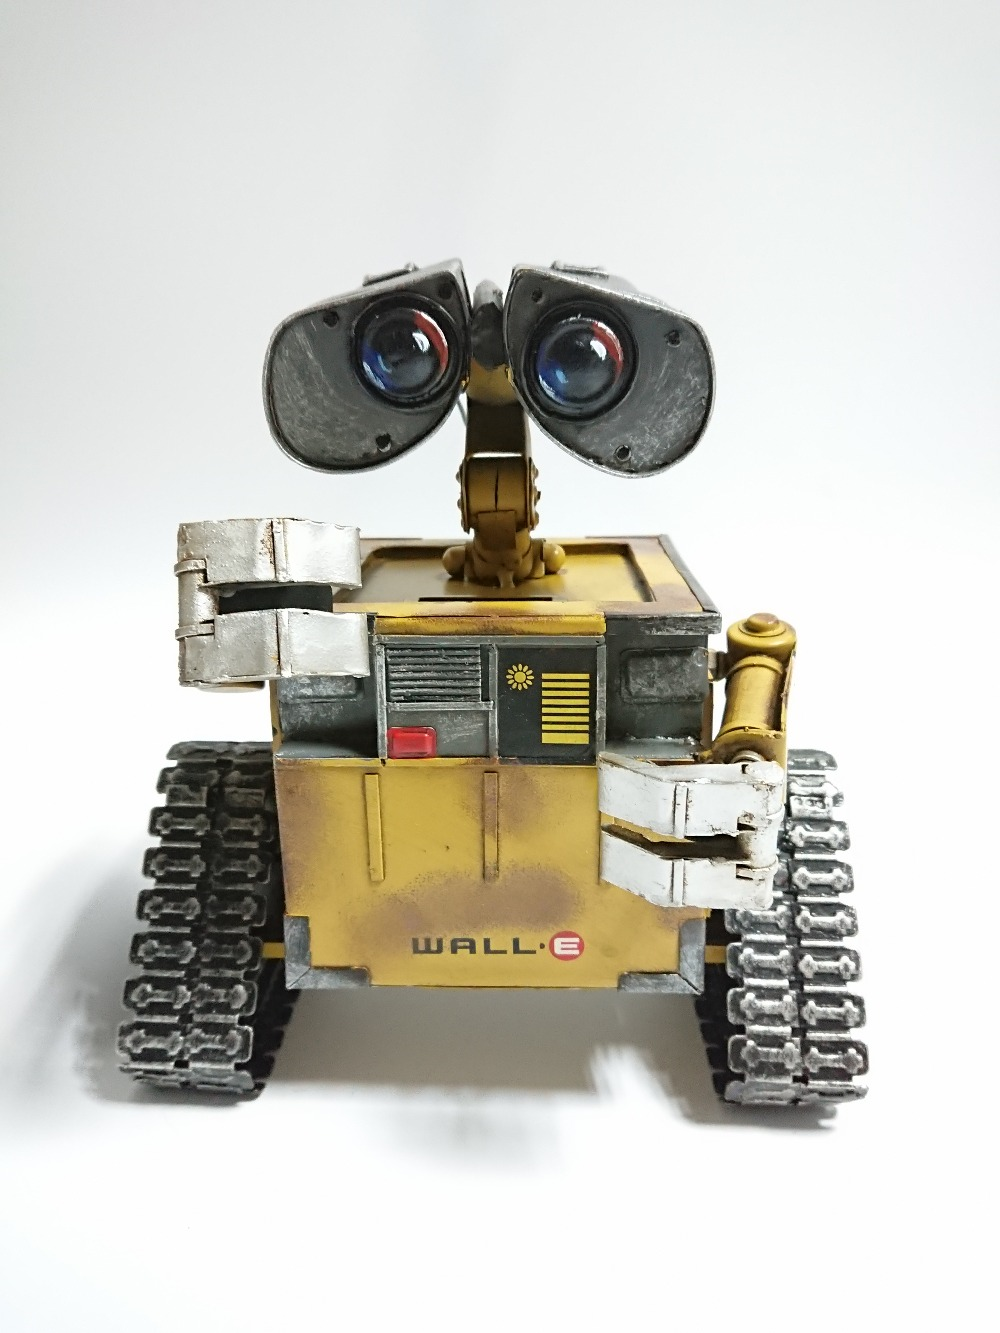 Metal Pig Bank Walle WALL-E WALL E 100% Handmade Steel Iron Sheet Model Action figure цены